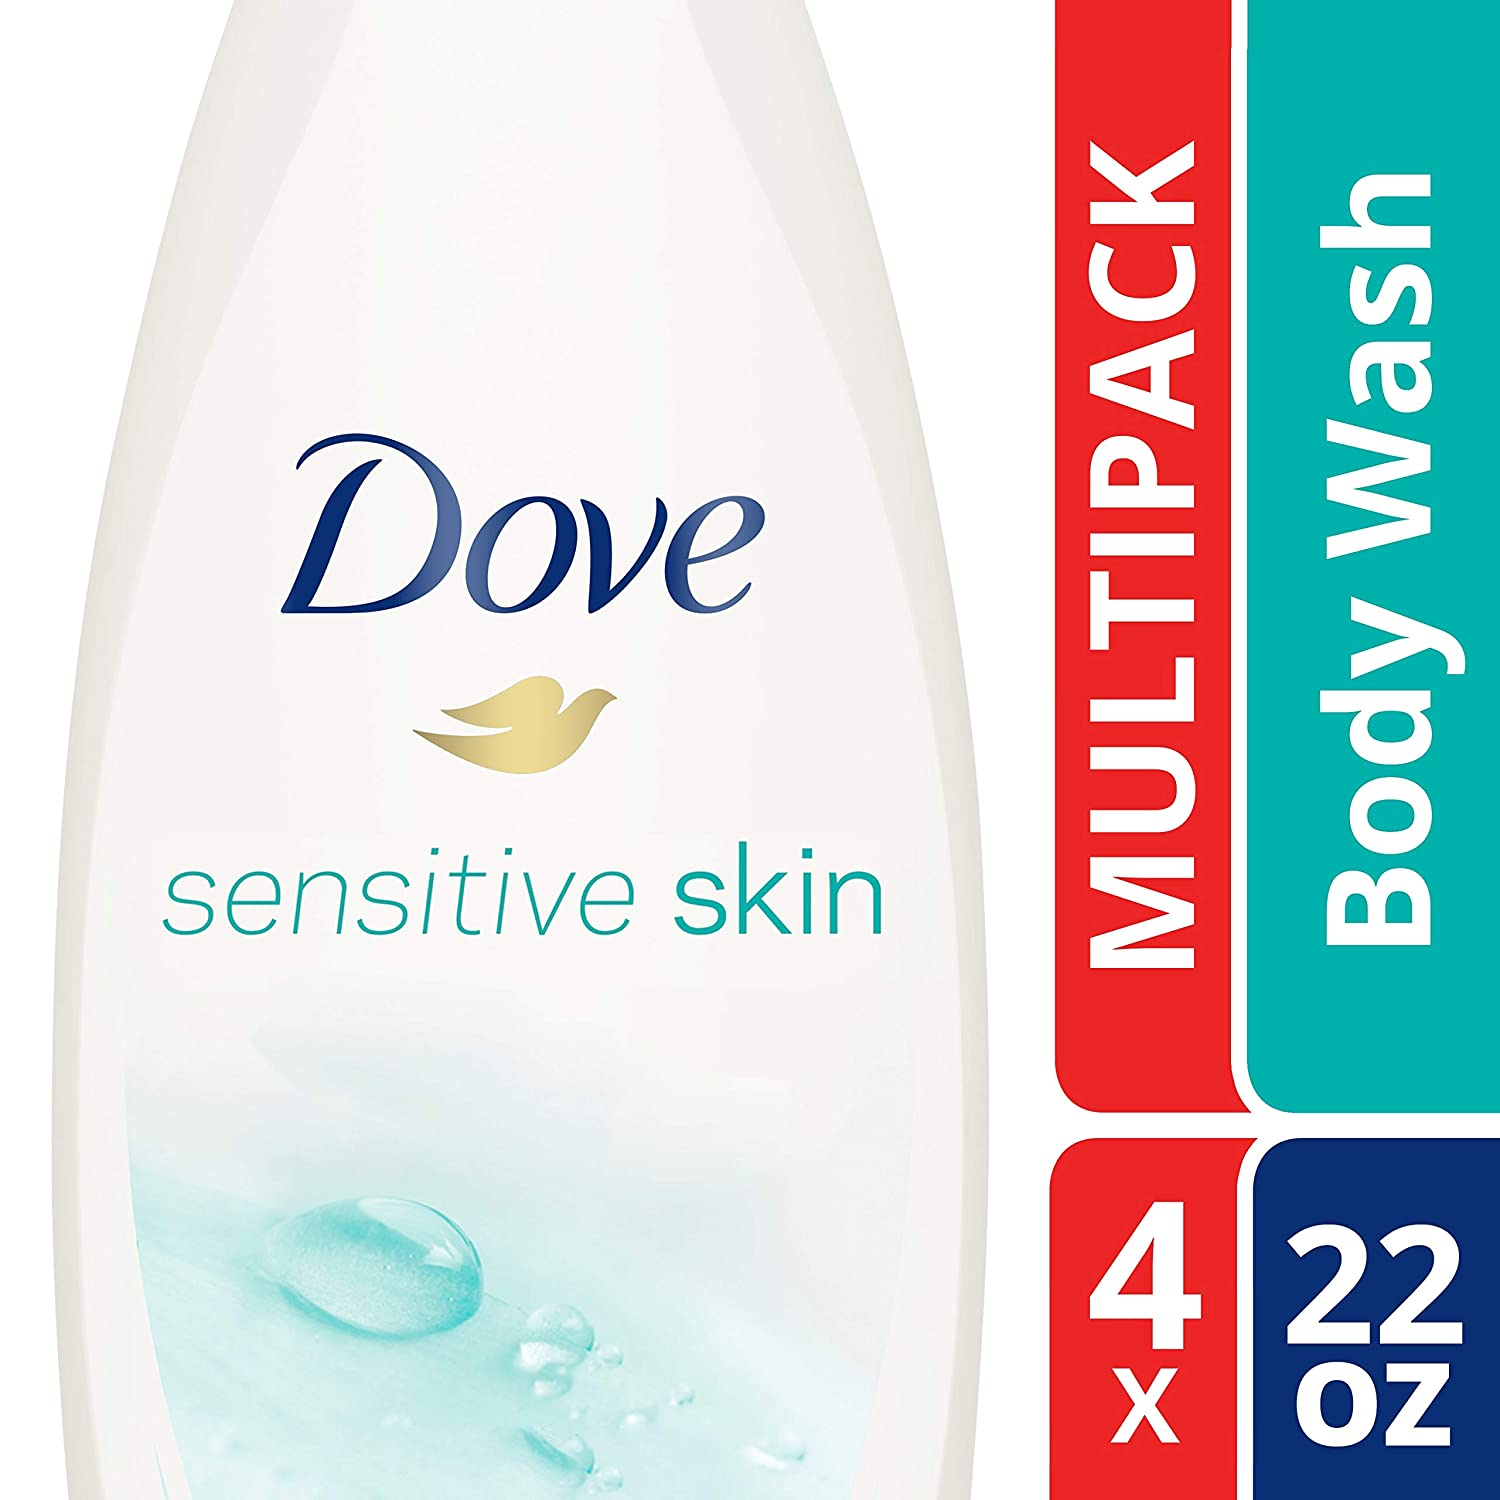 DoveSulfate Free and Hypoallergenic, Sensitive Skin Body Wash, 22 Fl Oz (Pack of 4)